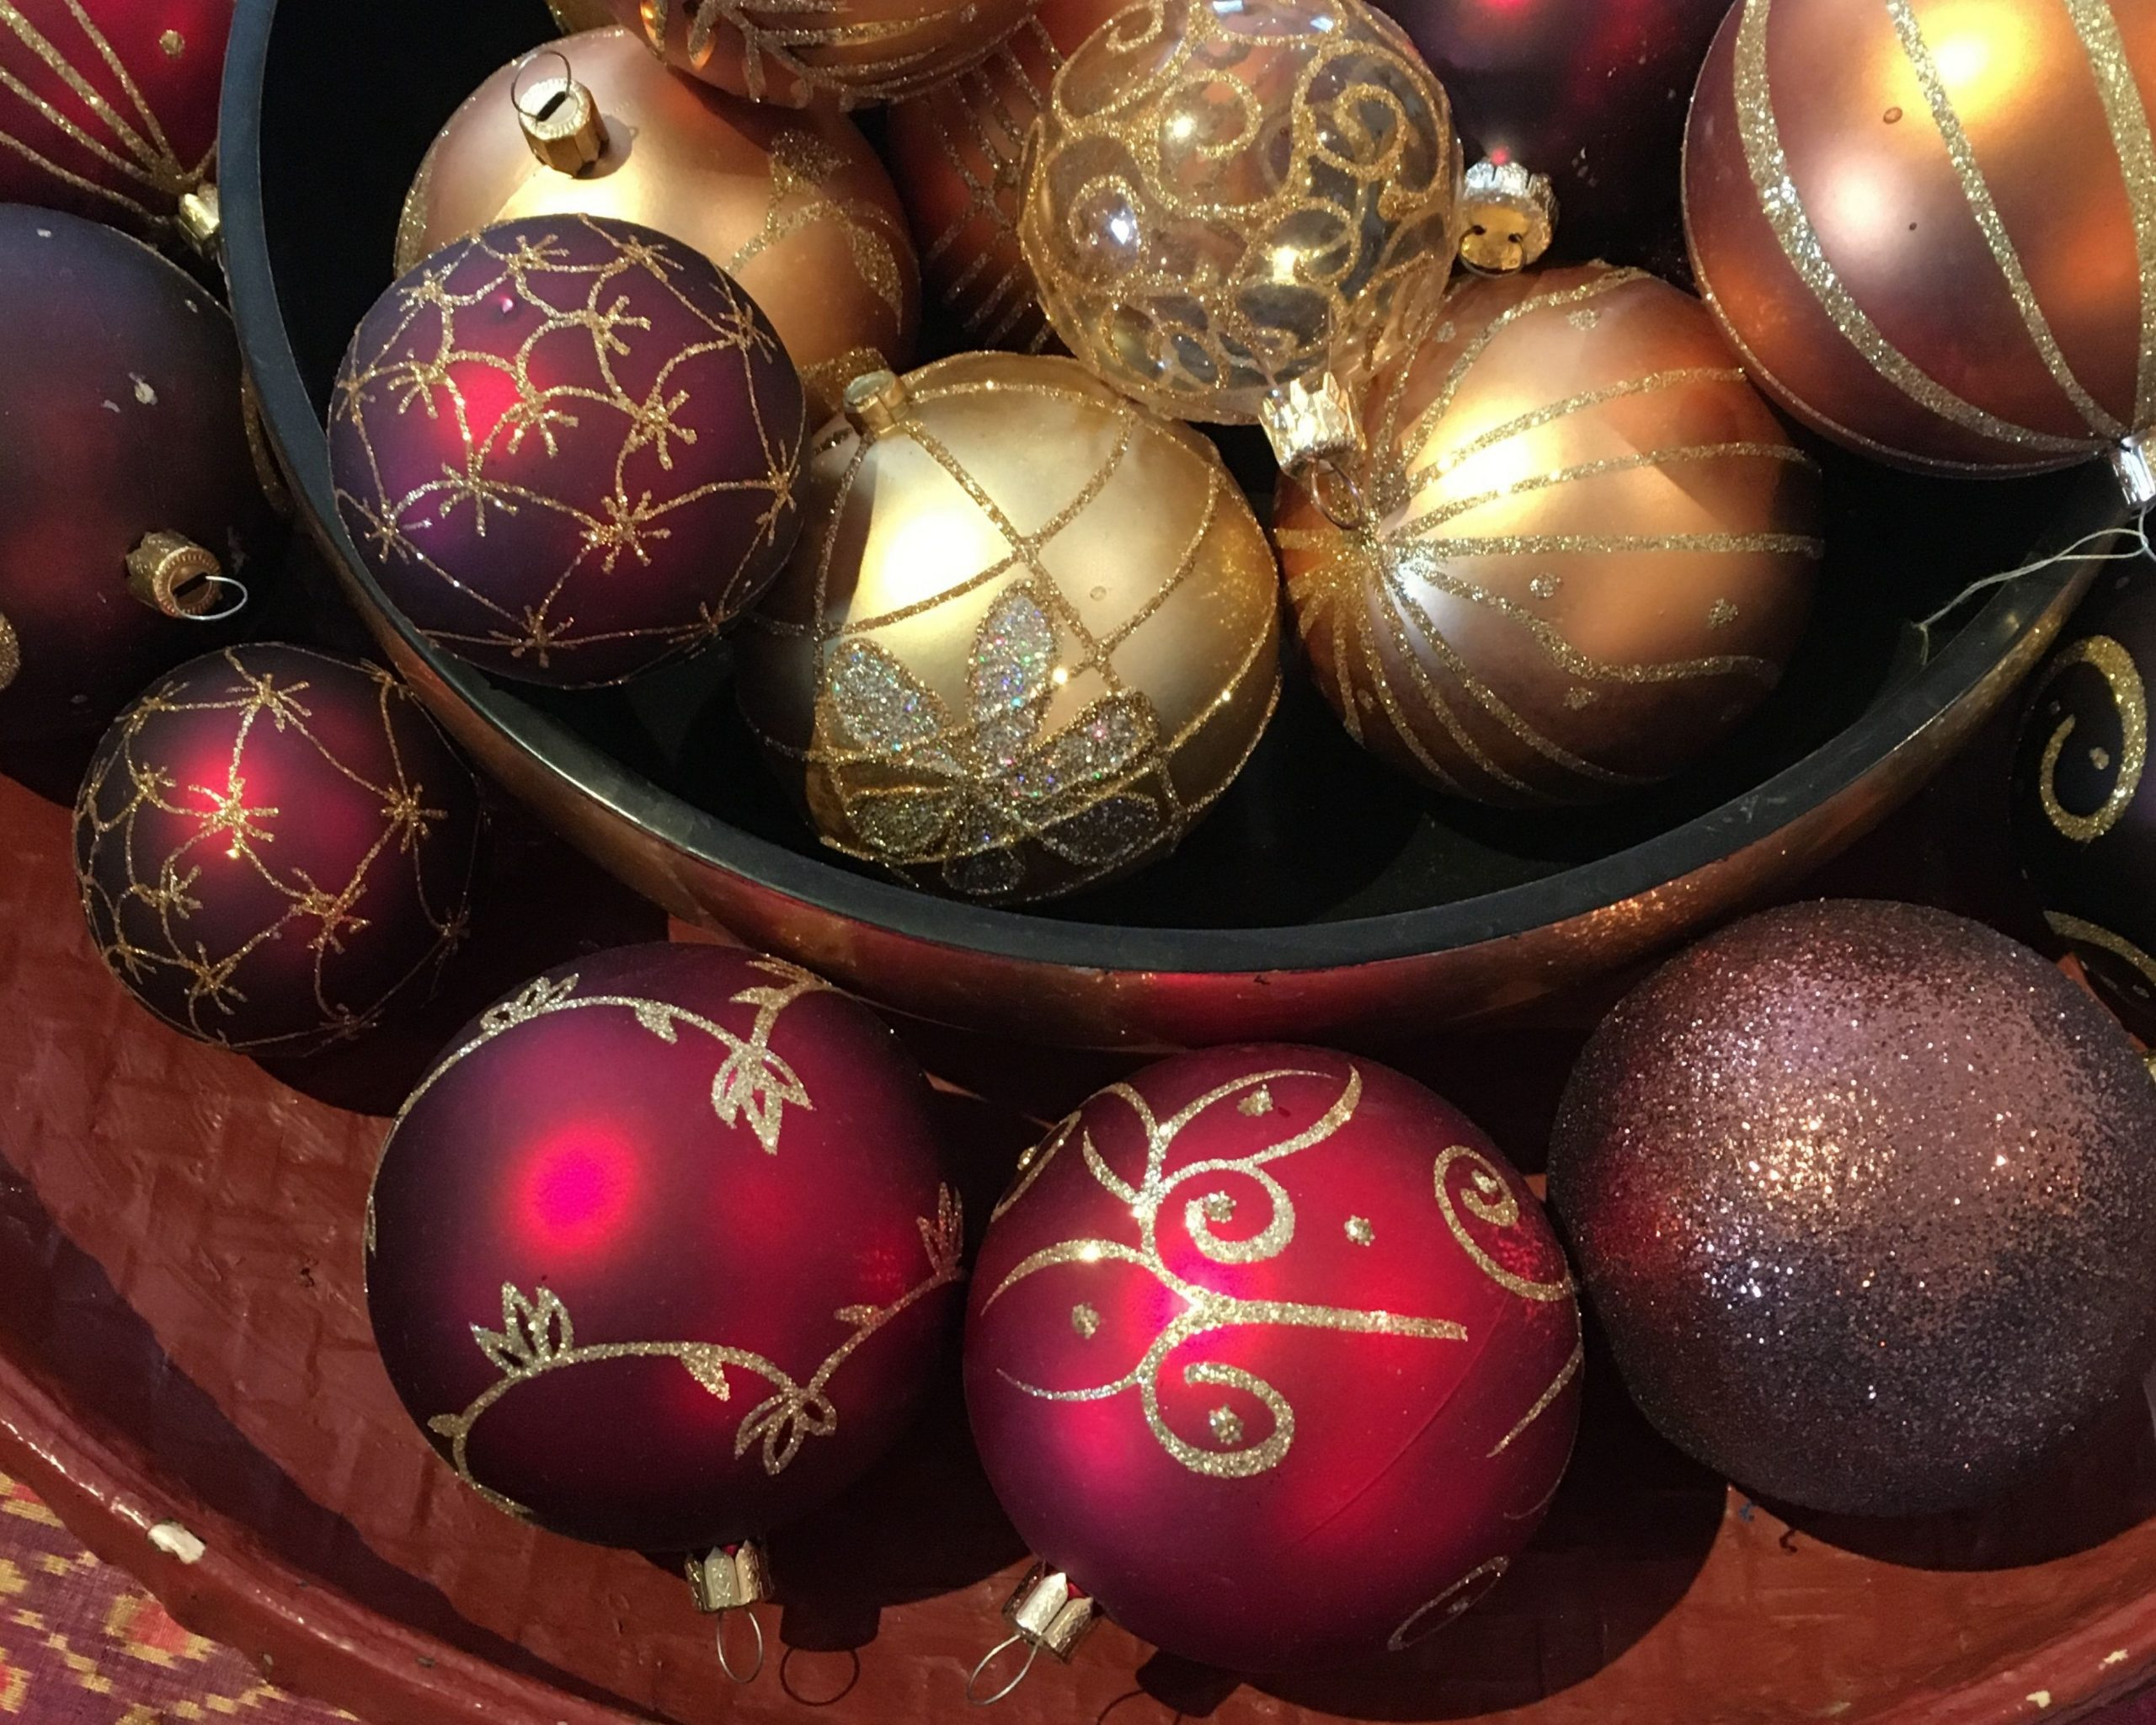 Christmas baubles in a bowl